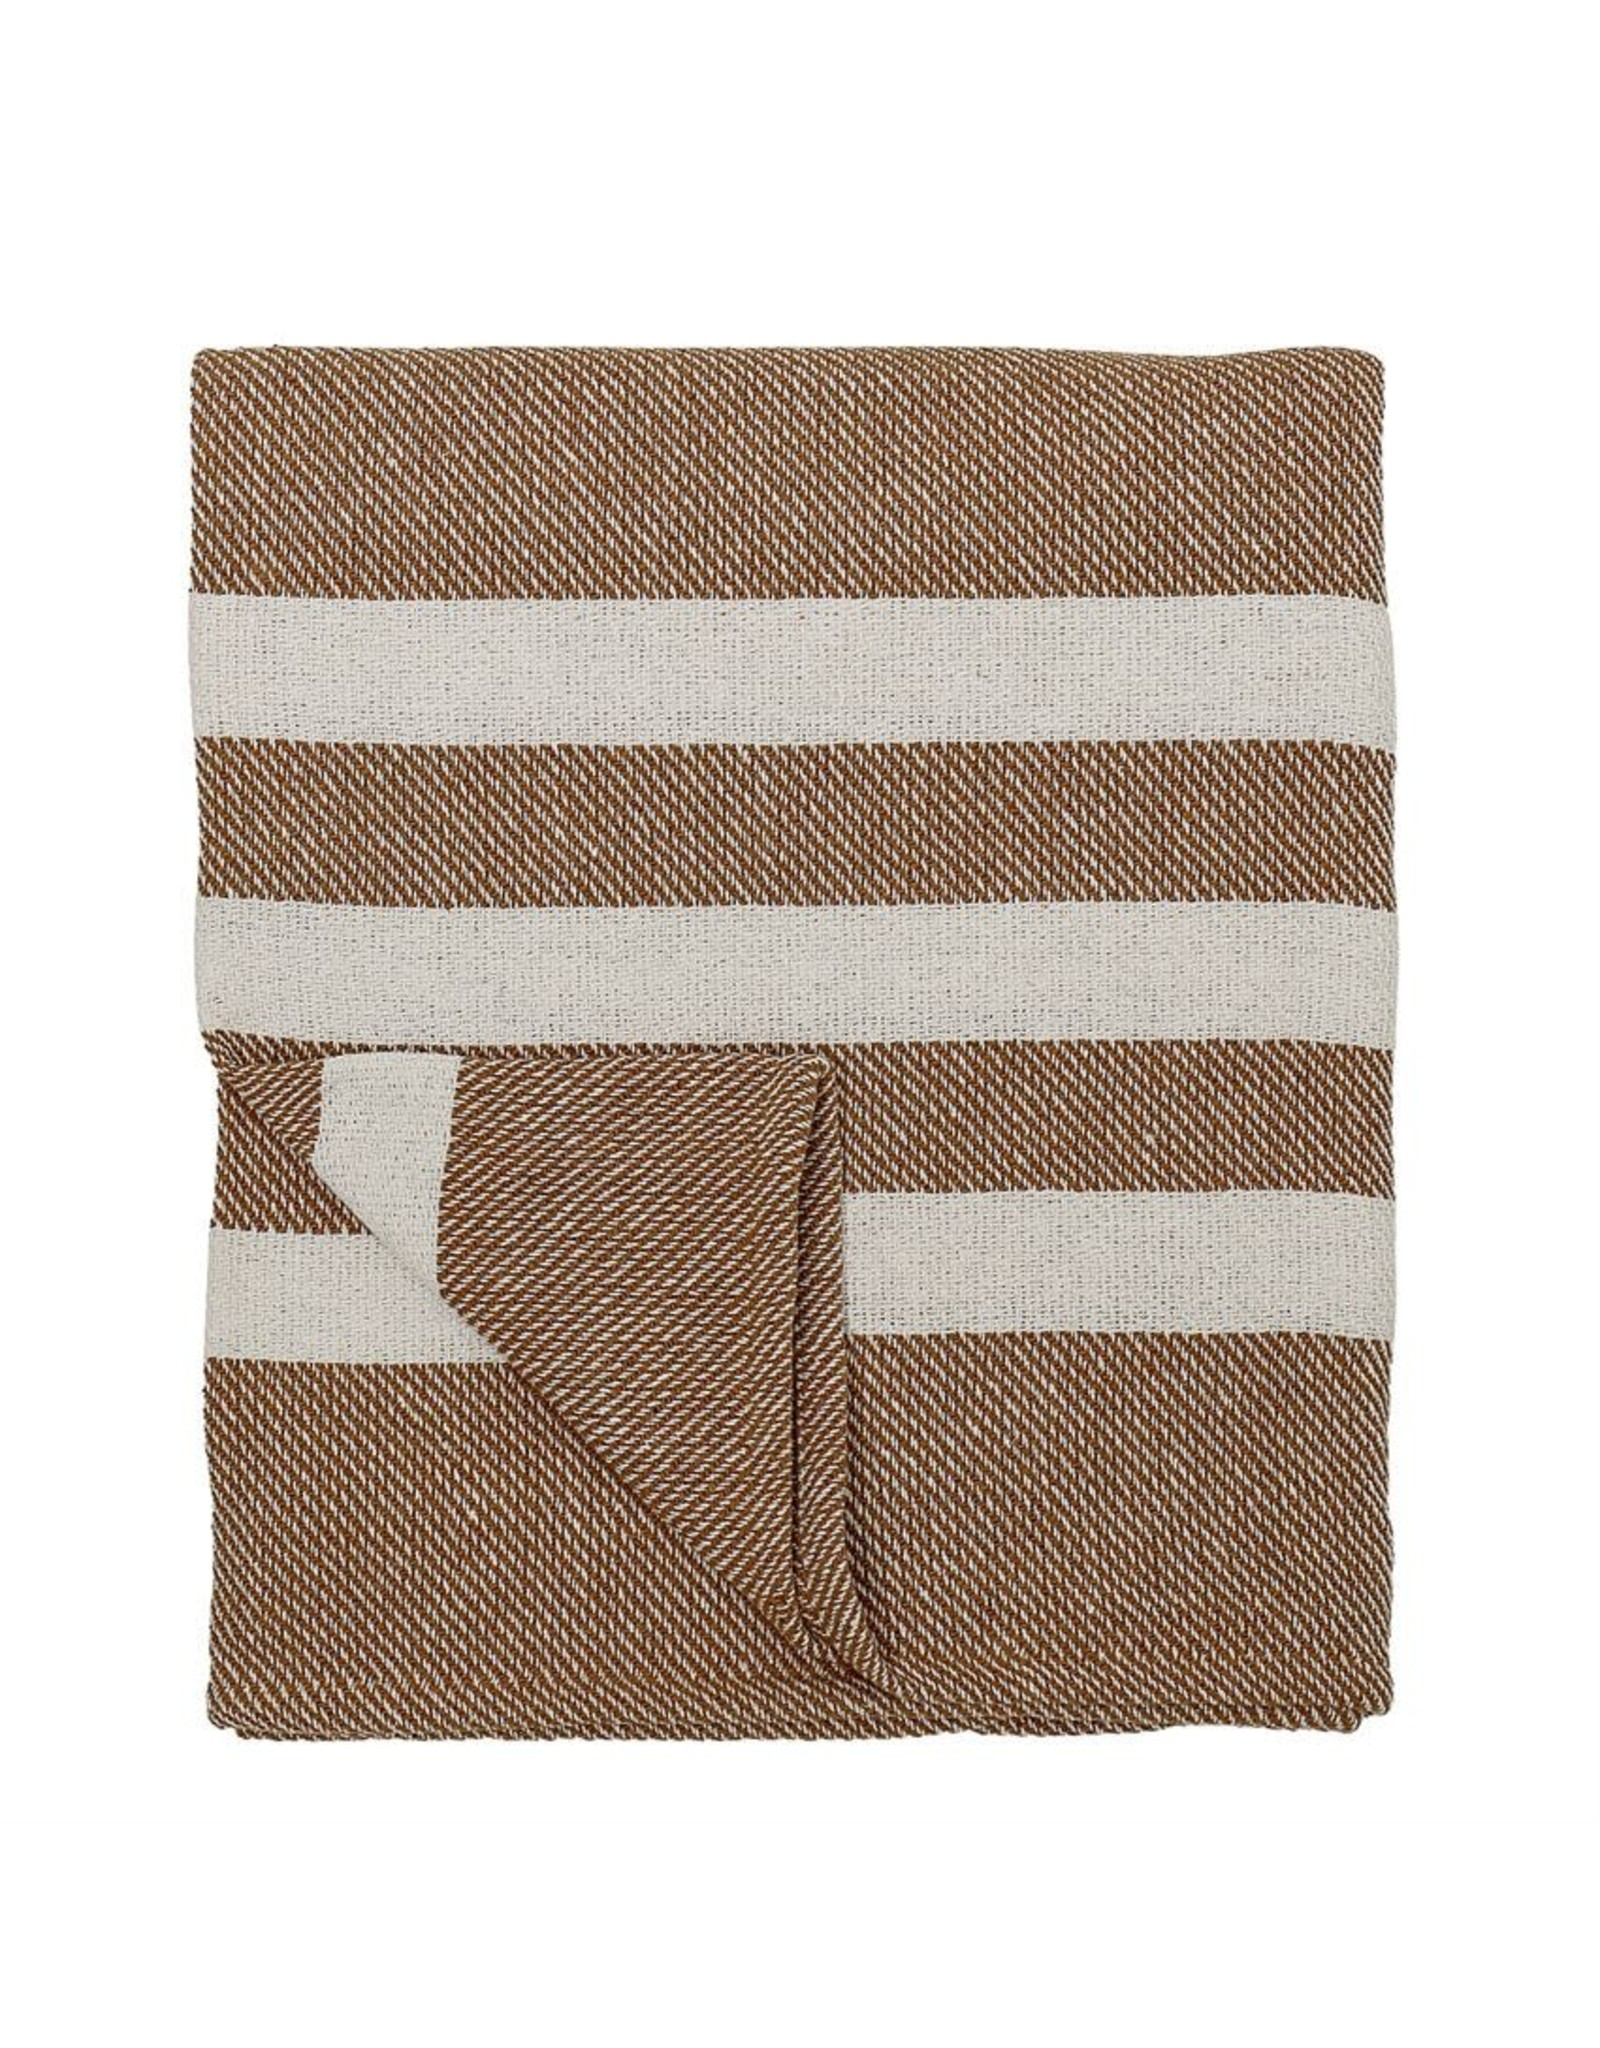 Website Recycled Cotton Knit Throw, Rust w/ White Stripe